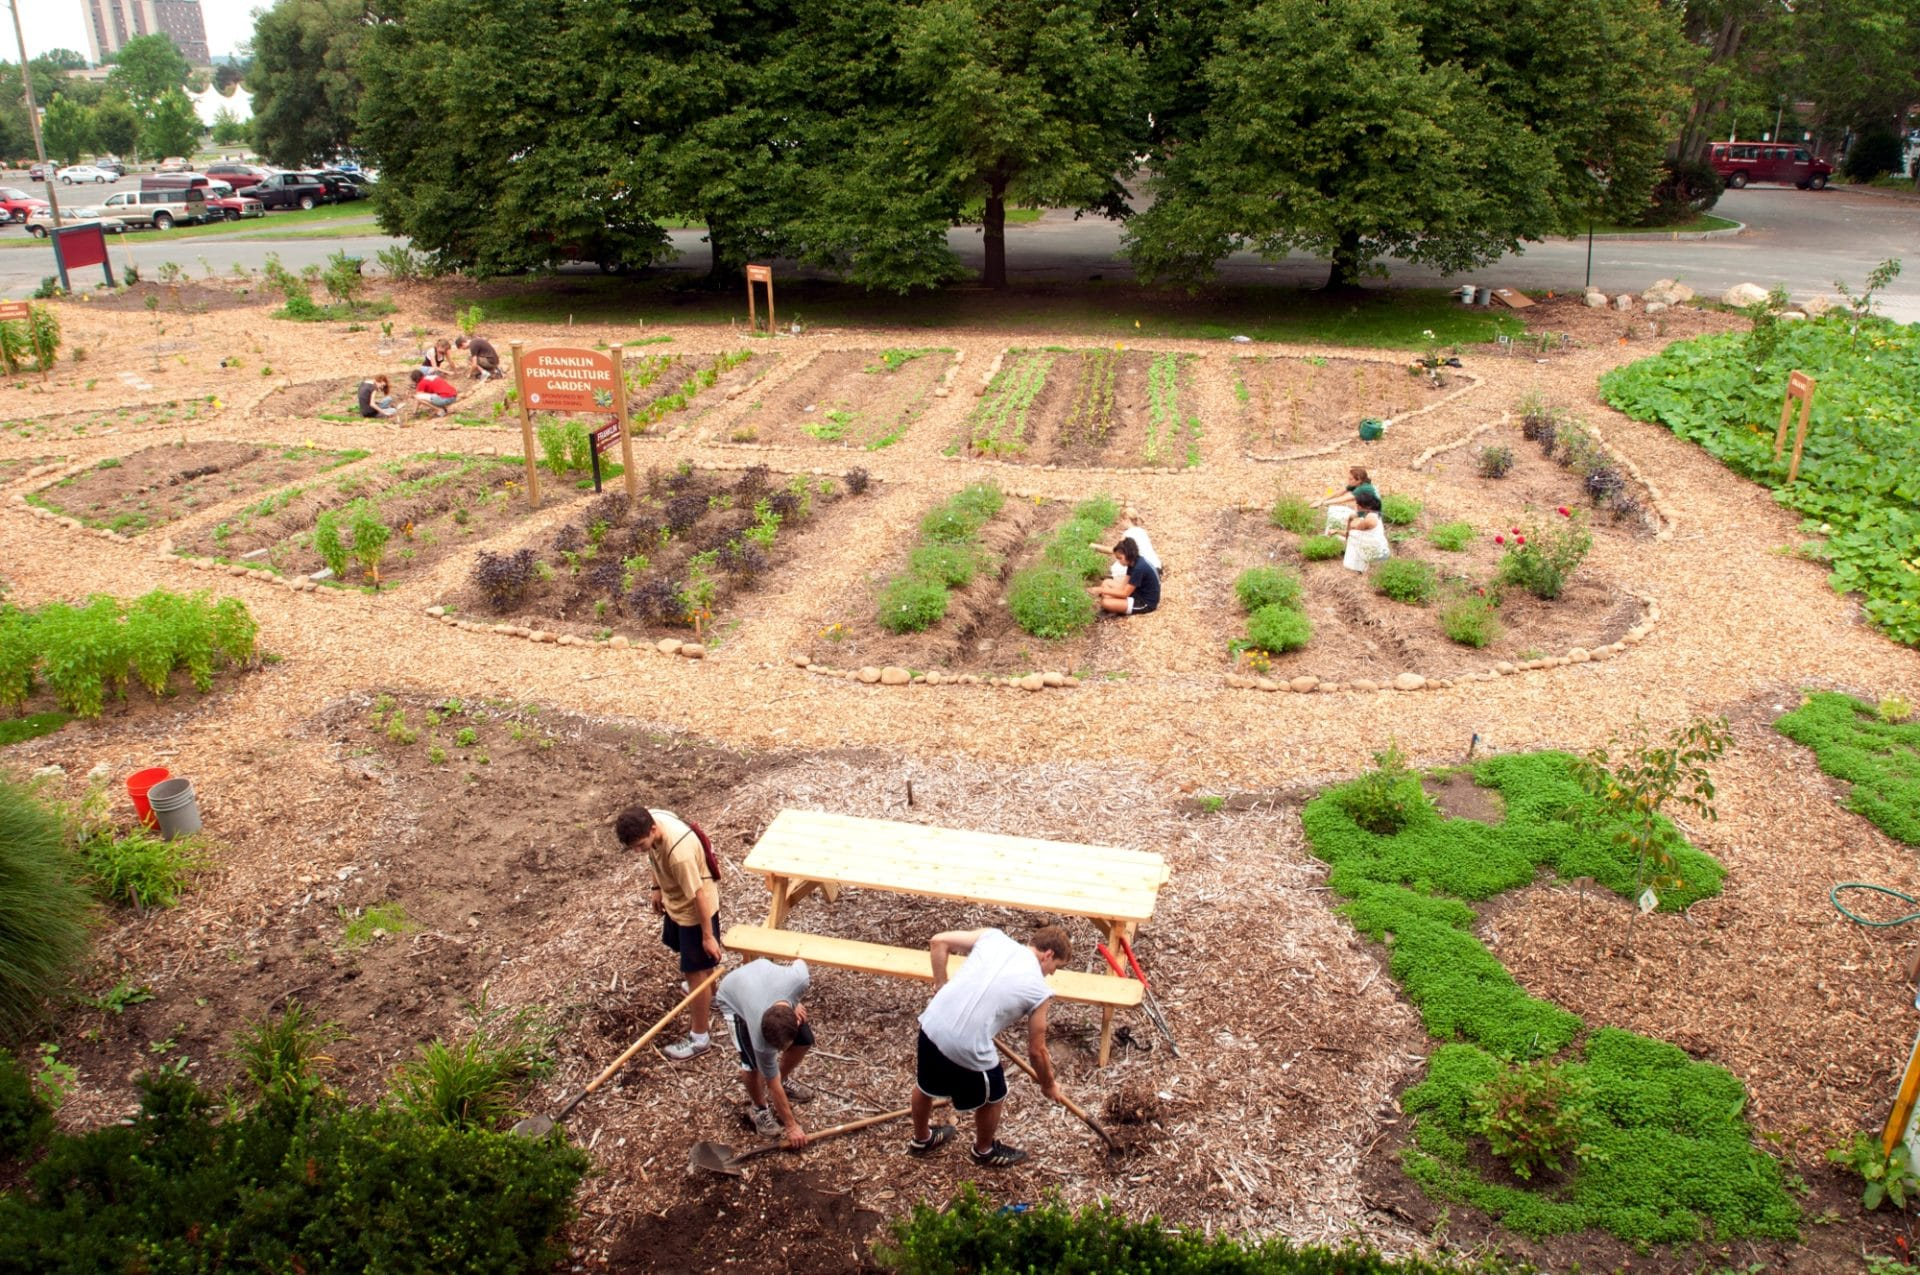 Permaculture volunteer for sustainability epicure culture epicure culture for Culture permaculture